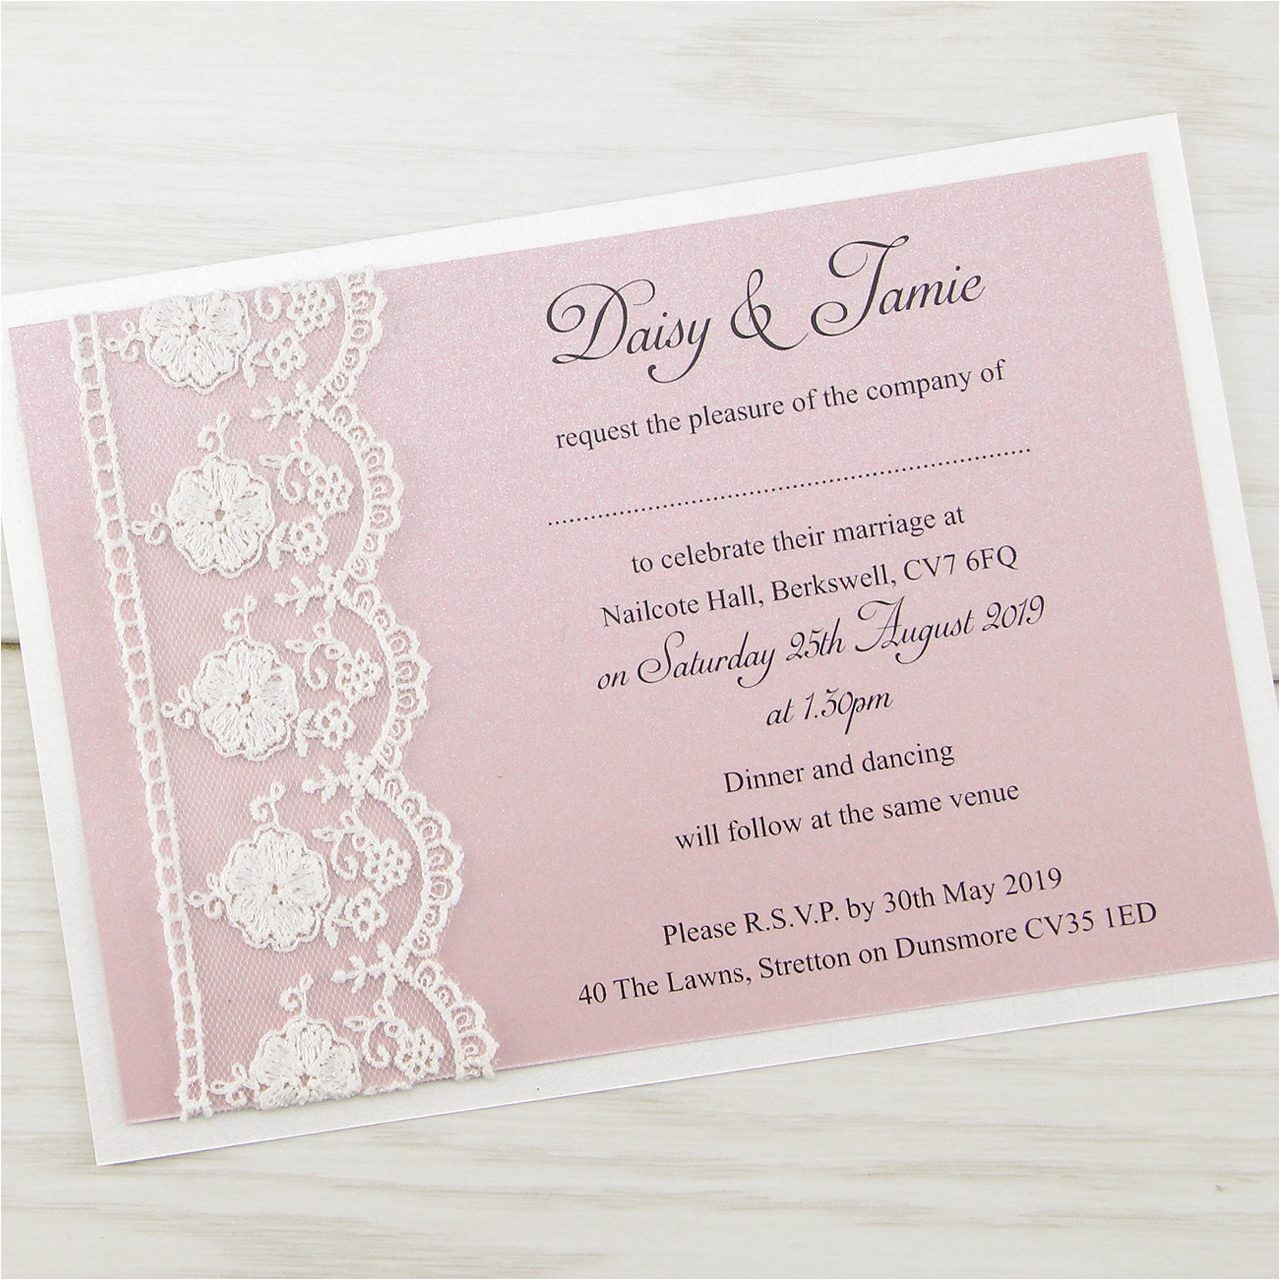 inexpensive wedding invitations for fancy wedding invitation ideas